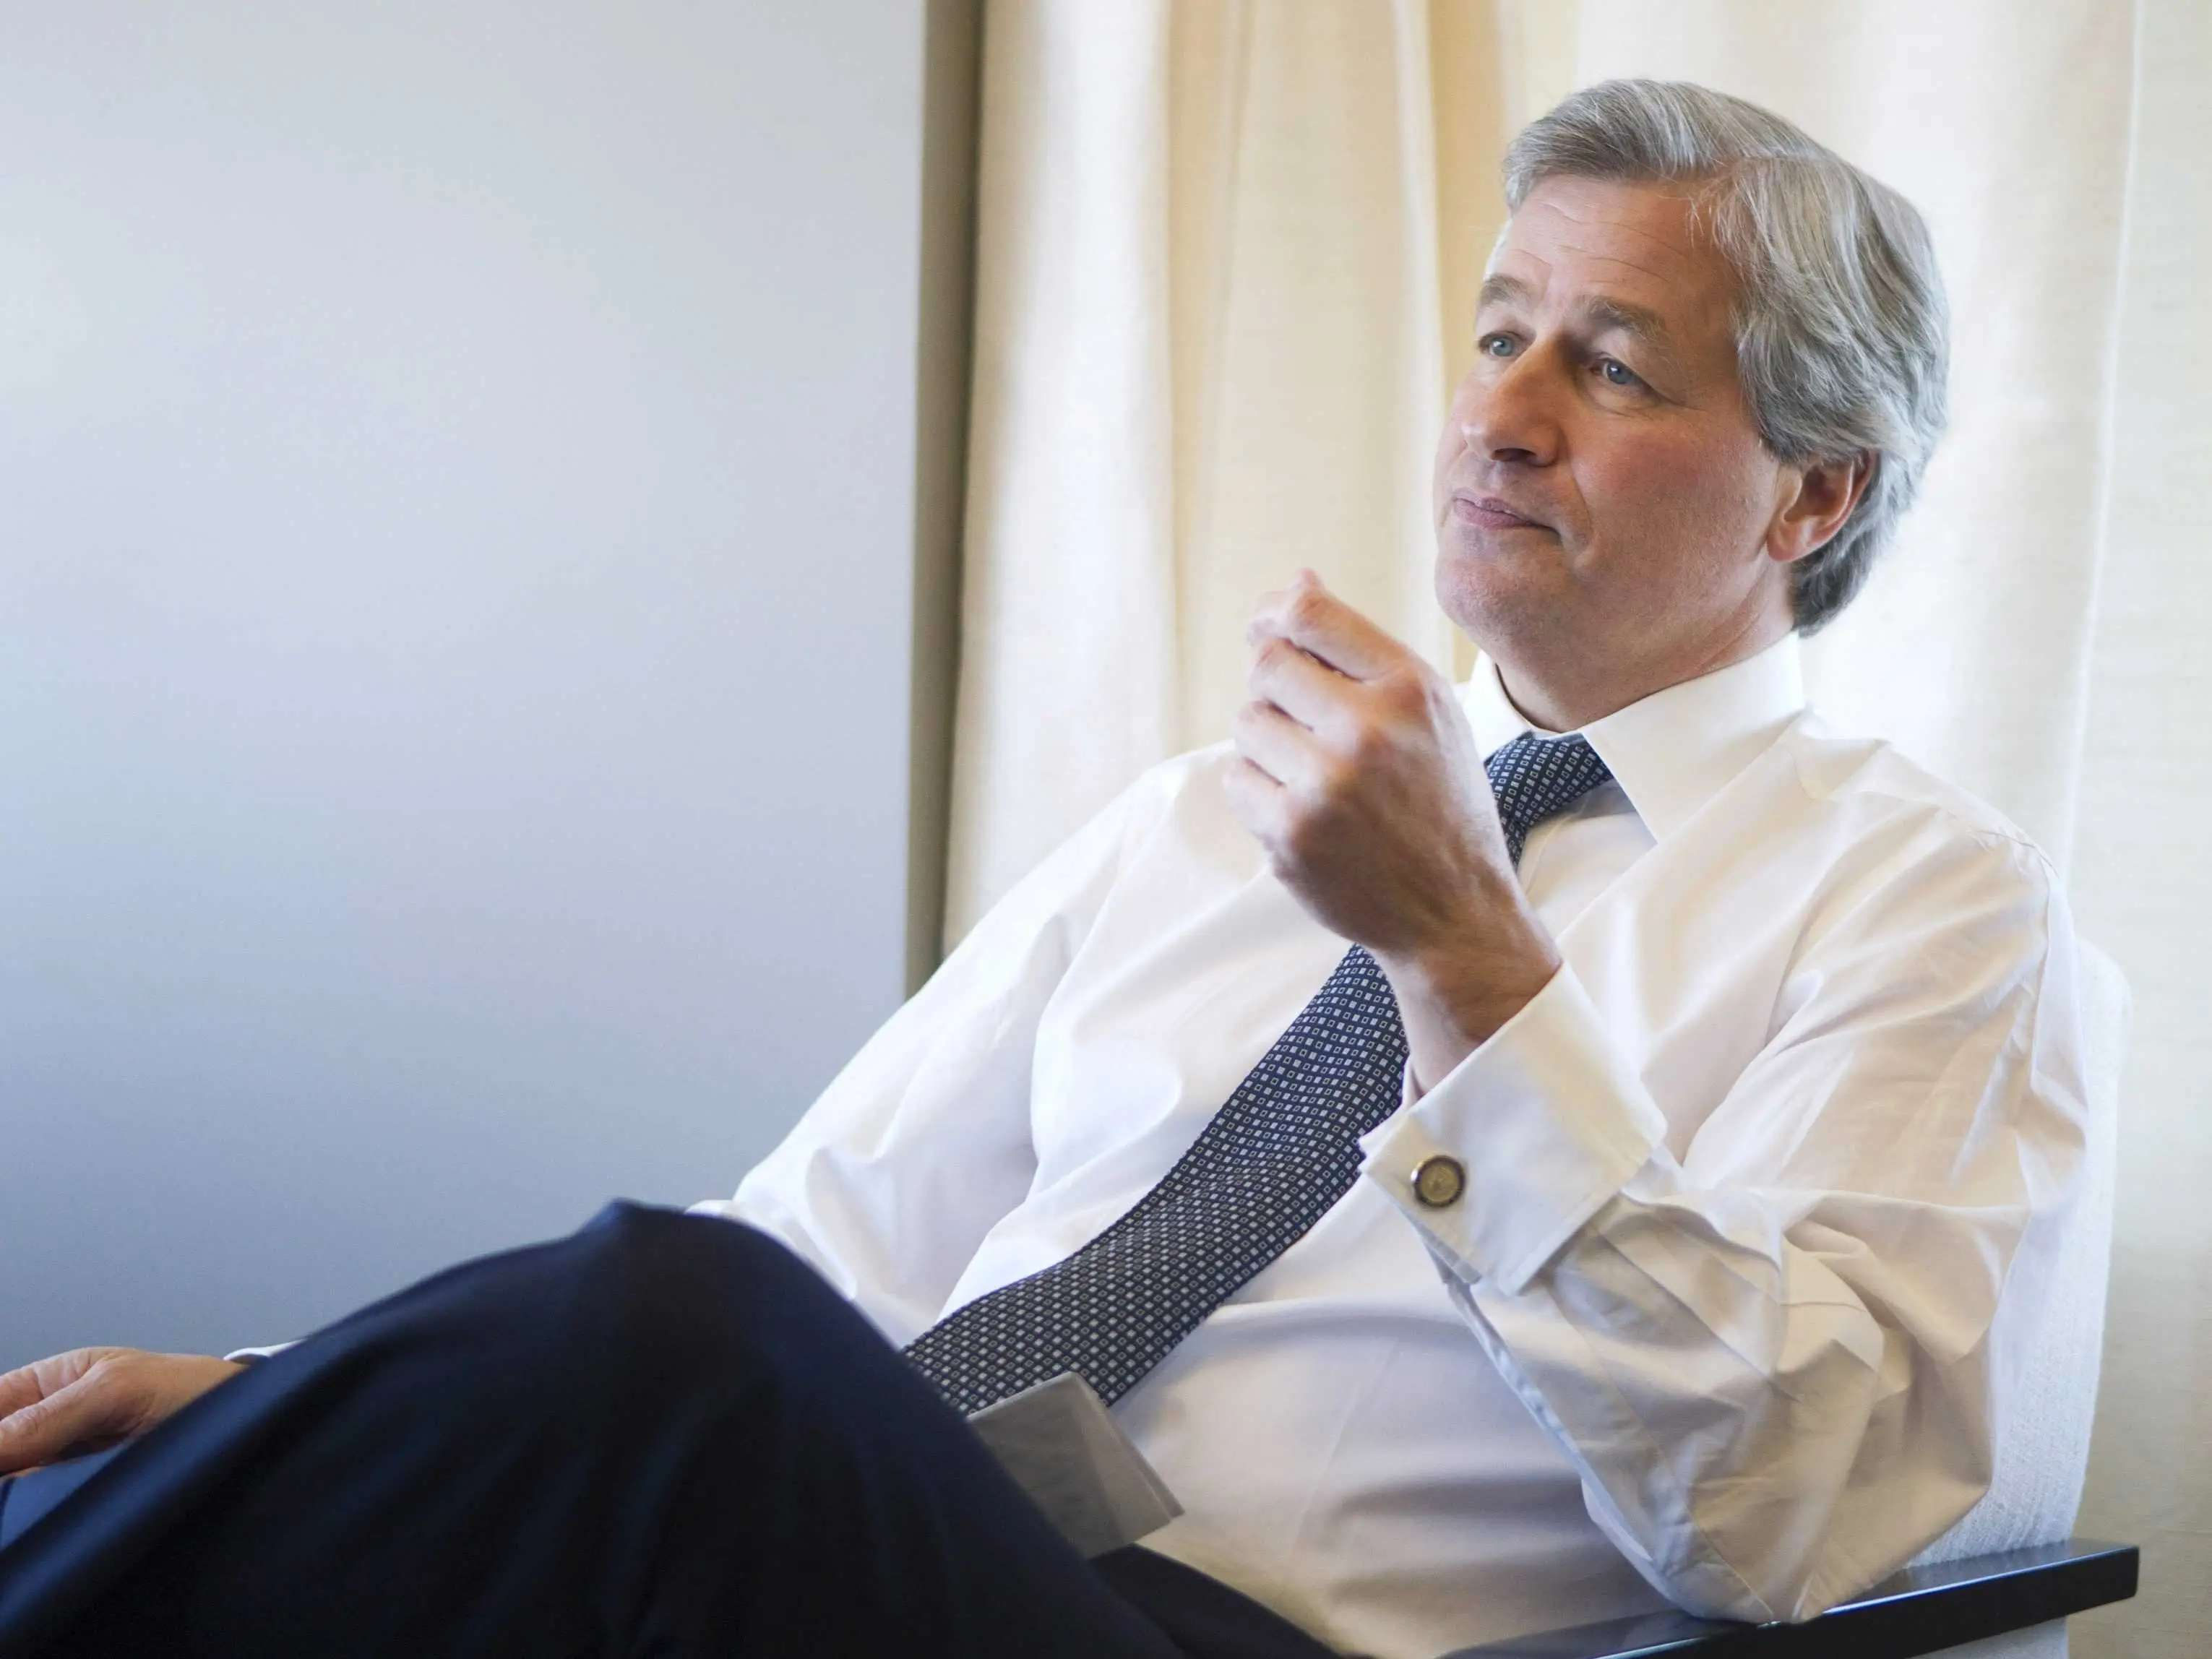 Jamie Dimon hates when people throw others under the bus.